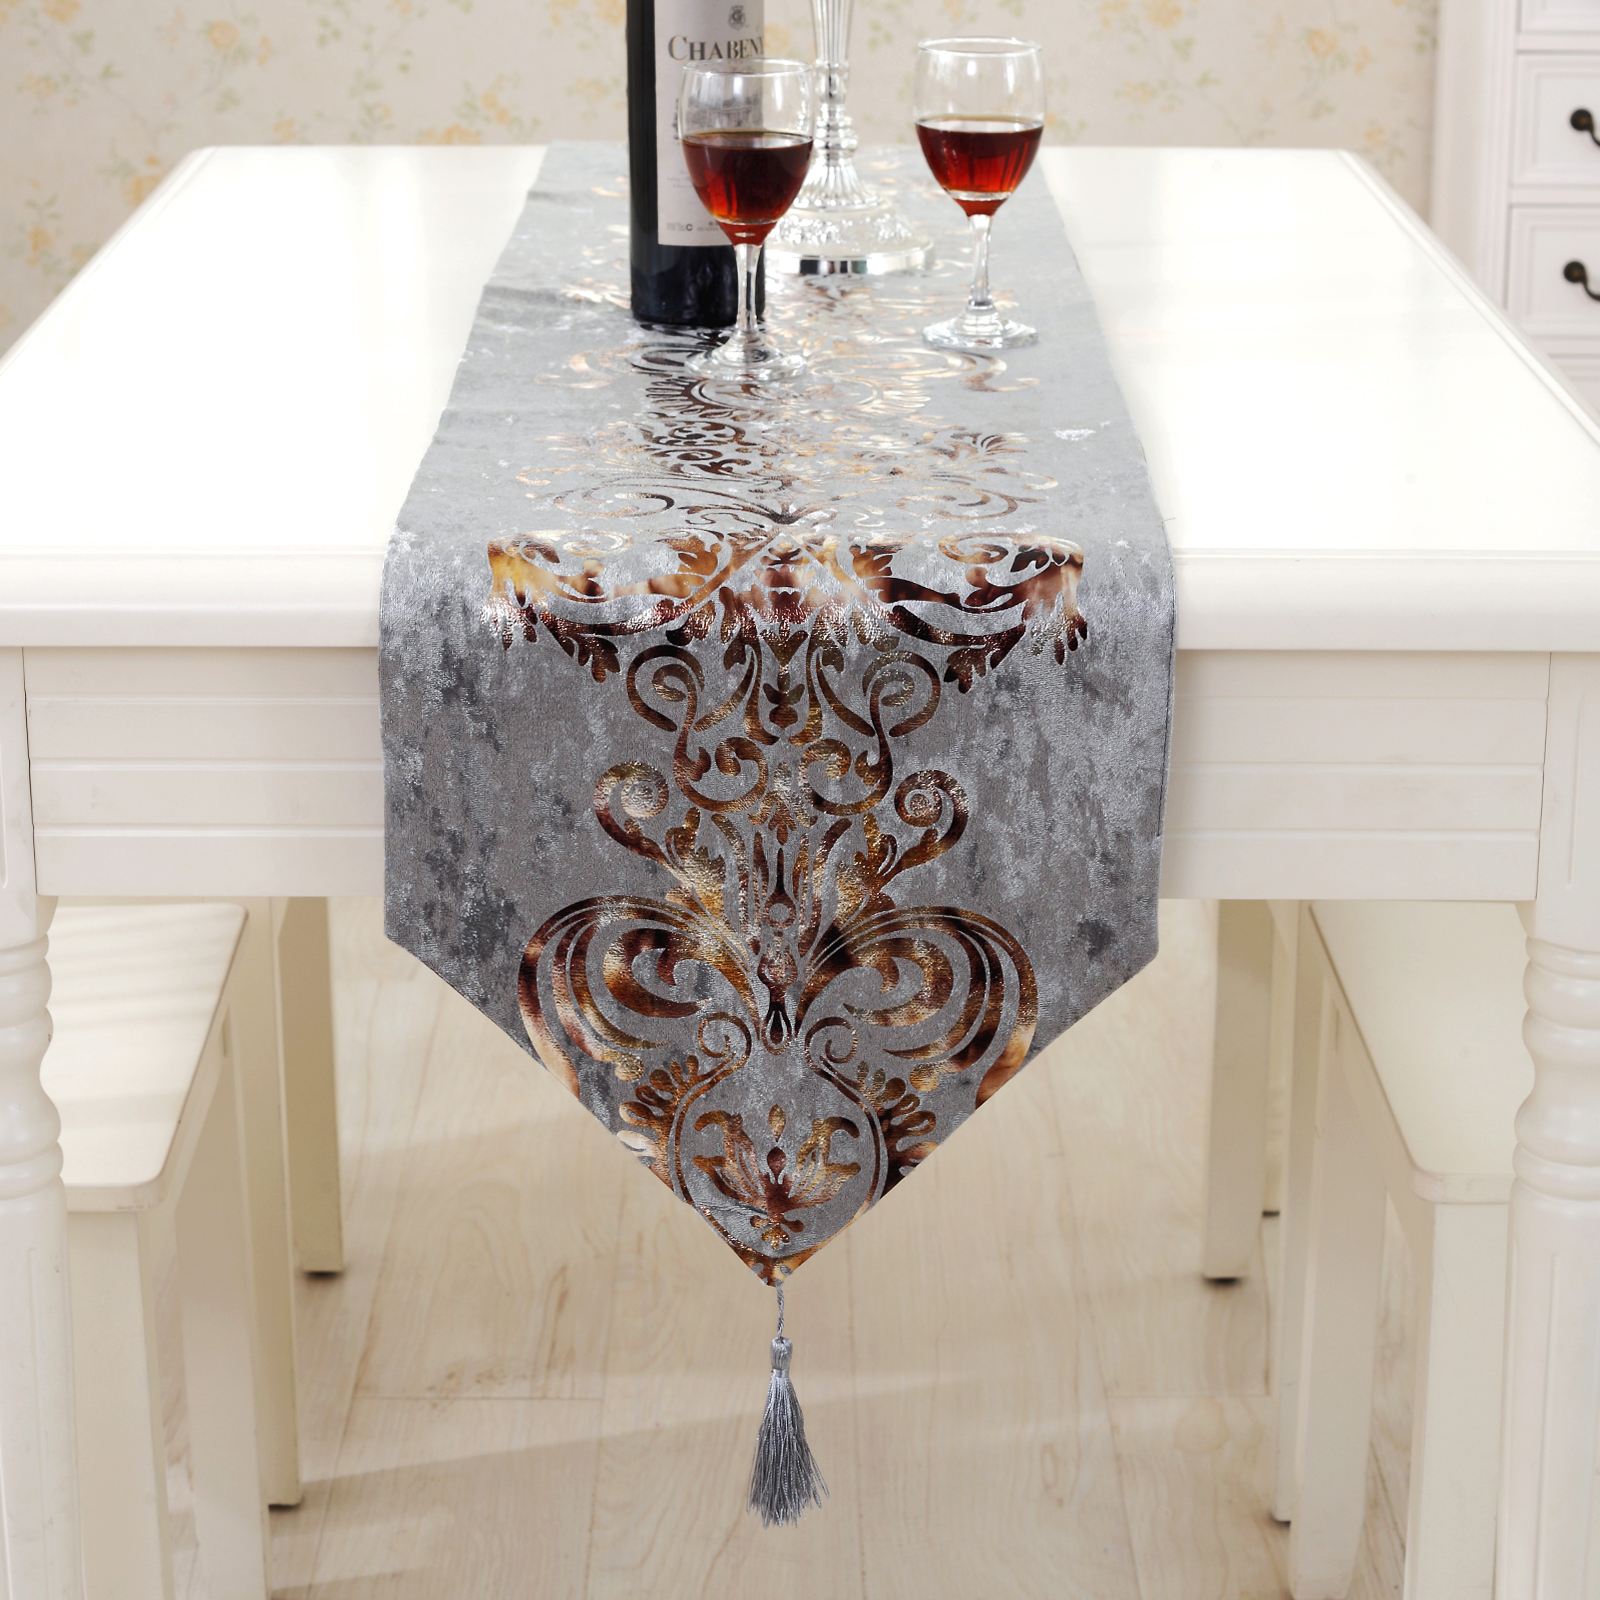 Christmas Table Runners.Us 11 79 49 Off European Luxury Table Runner Tablecloth Flocking Blossom Damask Wedding Christmas Table Cloth Bed End Runners Home Decoration In